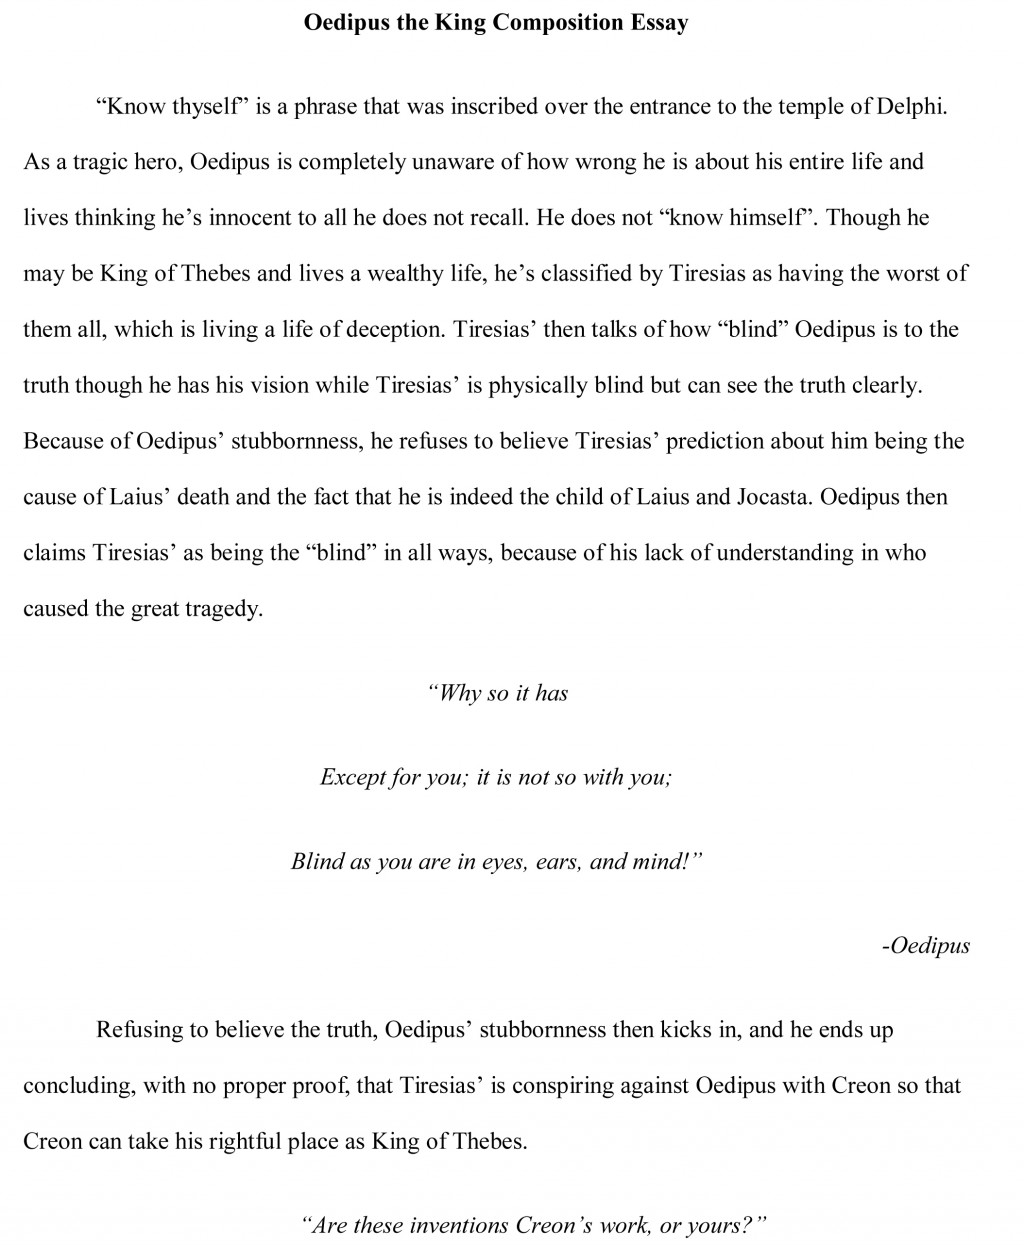 021 Oedipus Essay Free Sample Example Good Hook For Impressive A An About The Odyssey Writing Large